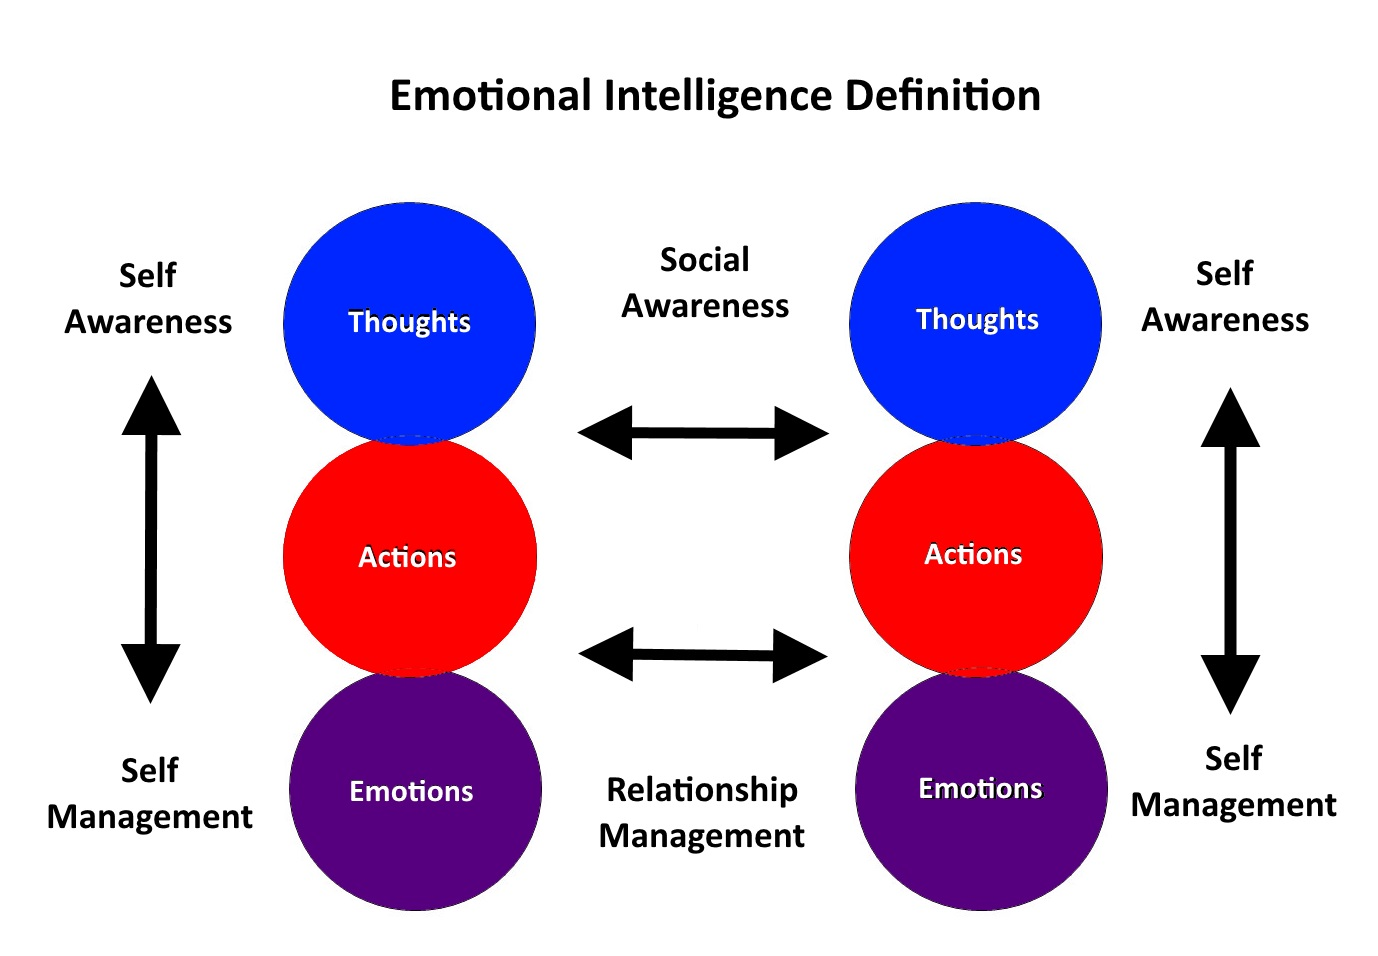 Emotional intellligence